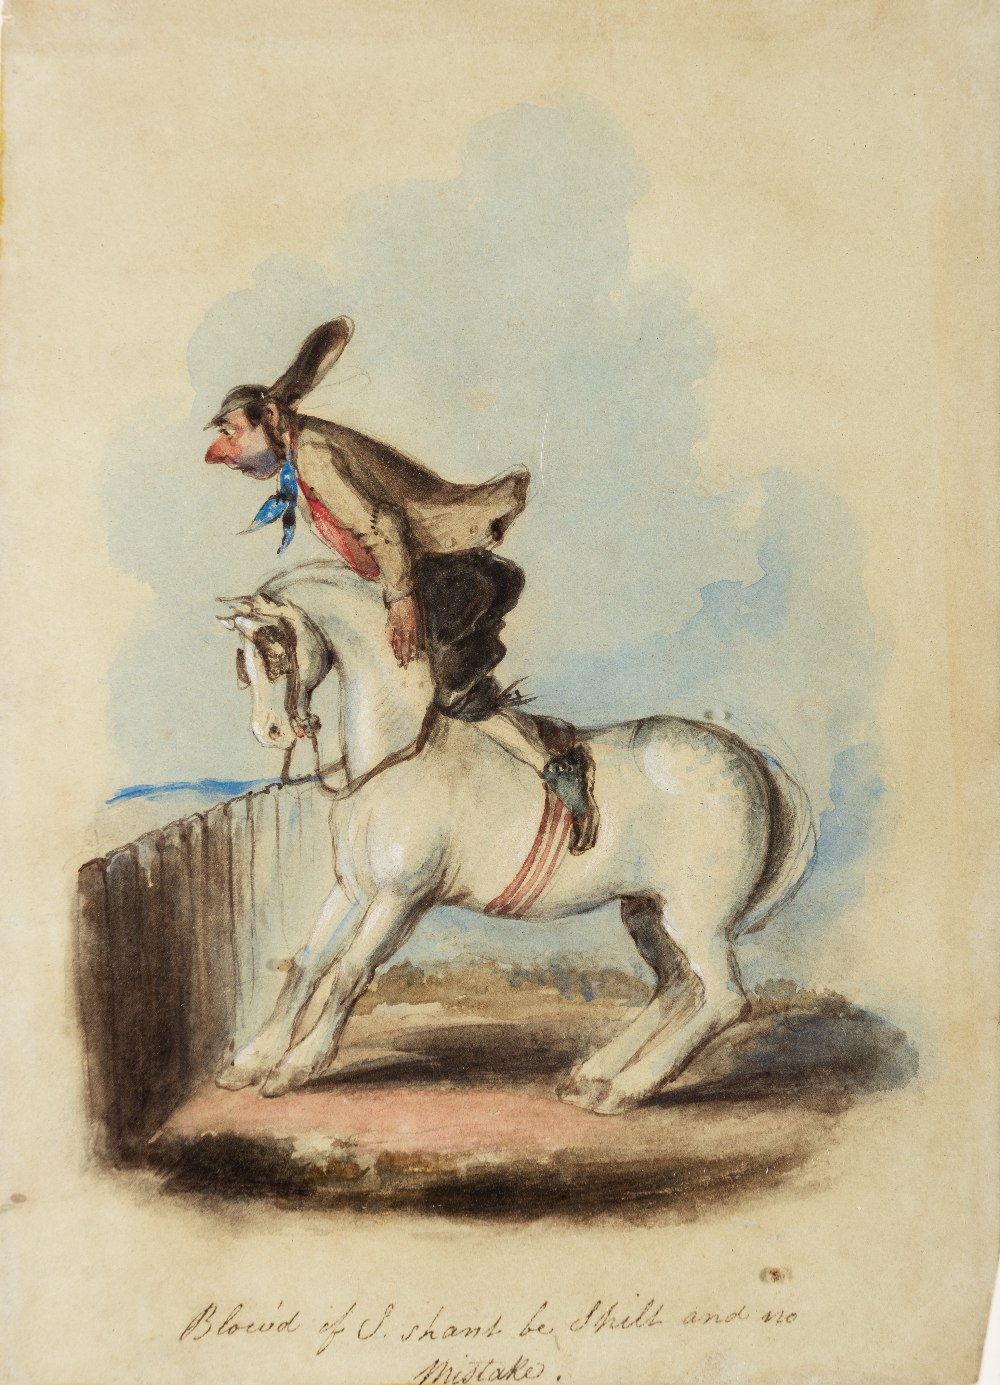 Lot 101 - ATTRIBUTED TO JOHN LEECH (1817-1864) BLOWED IF I SHAN'T BE AND NO MISTAKE pen & ink with coloured